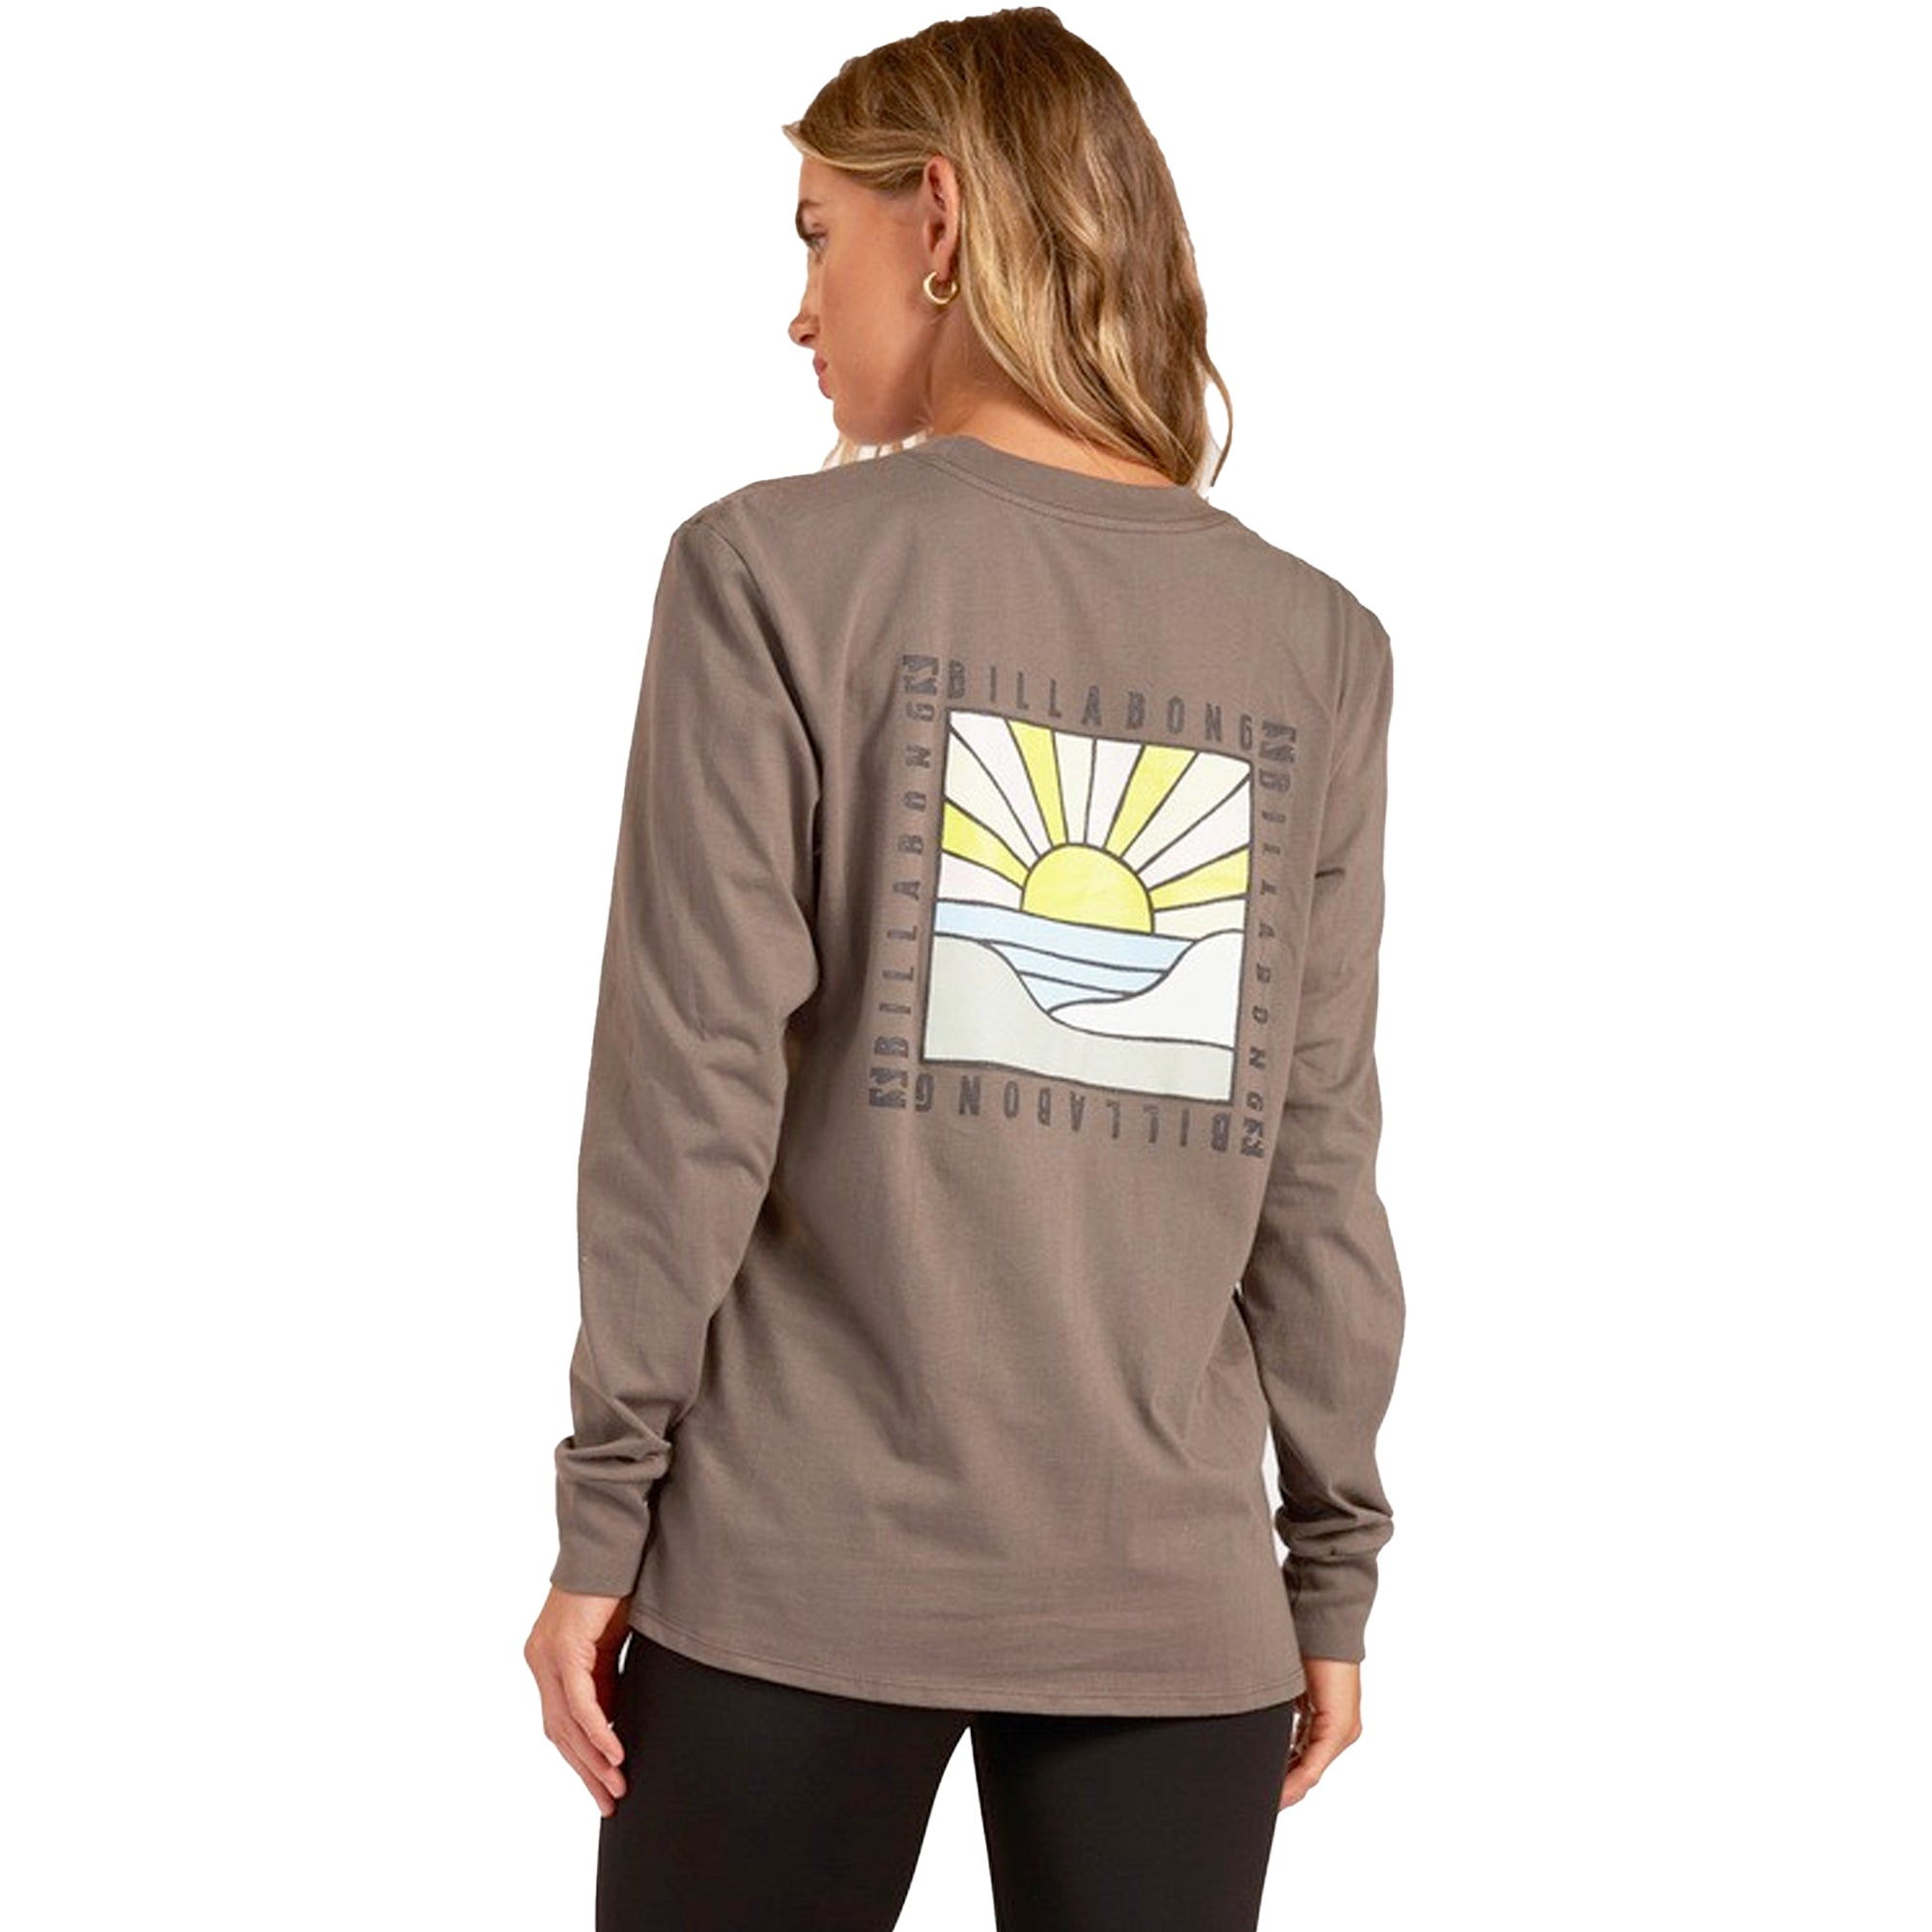 Billabong ADIV Women's L/S T-Shirt